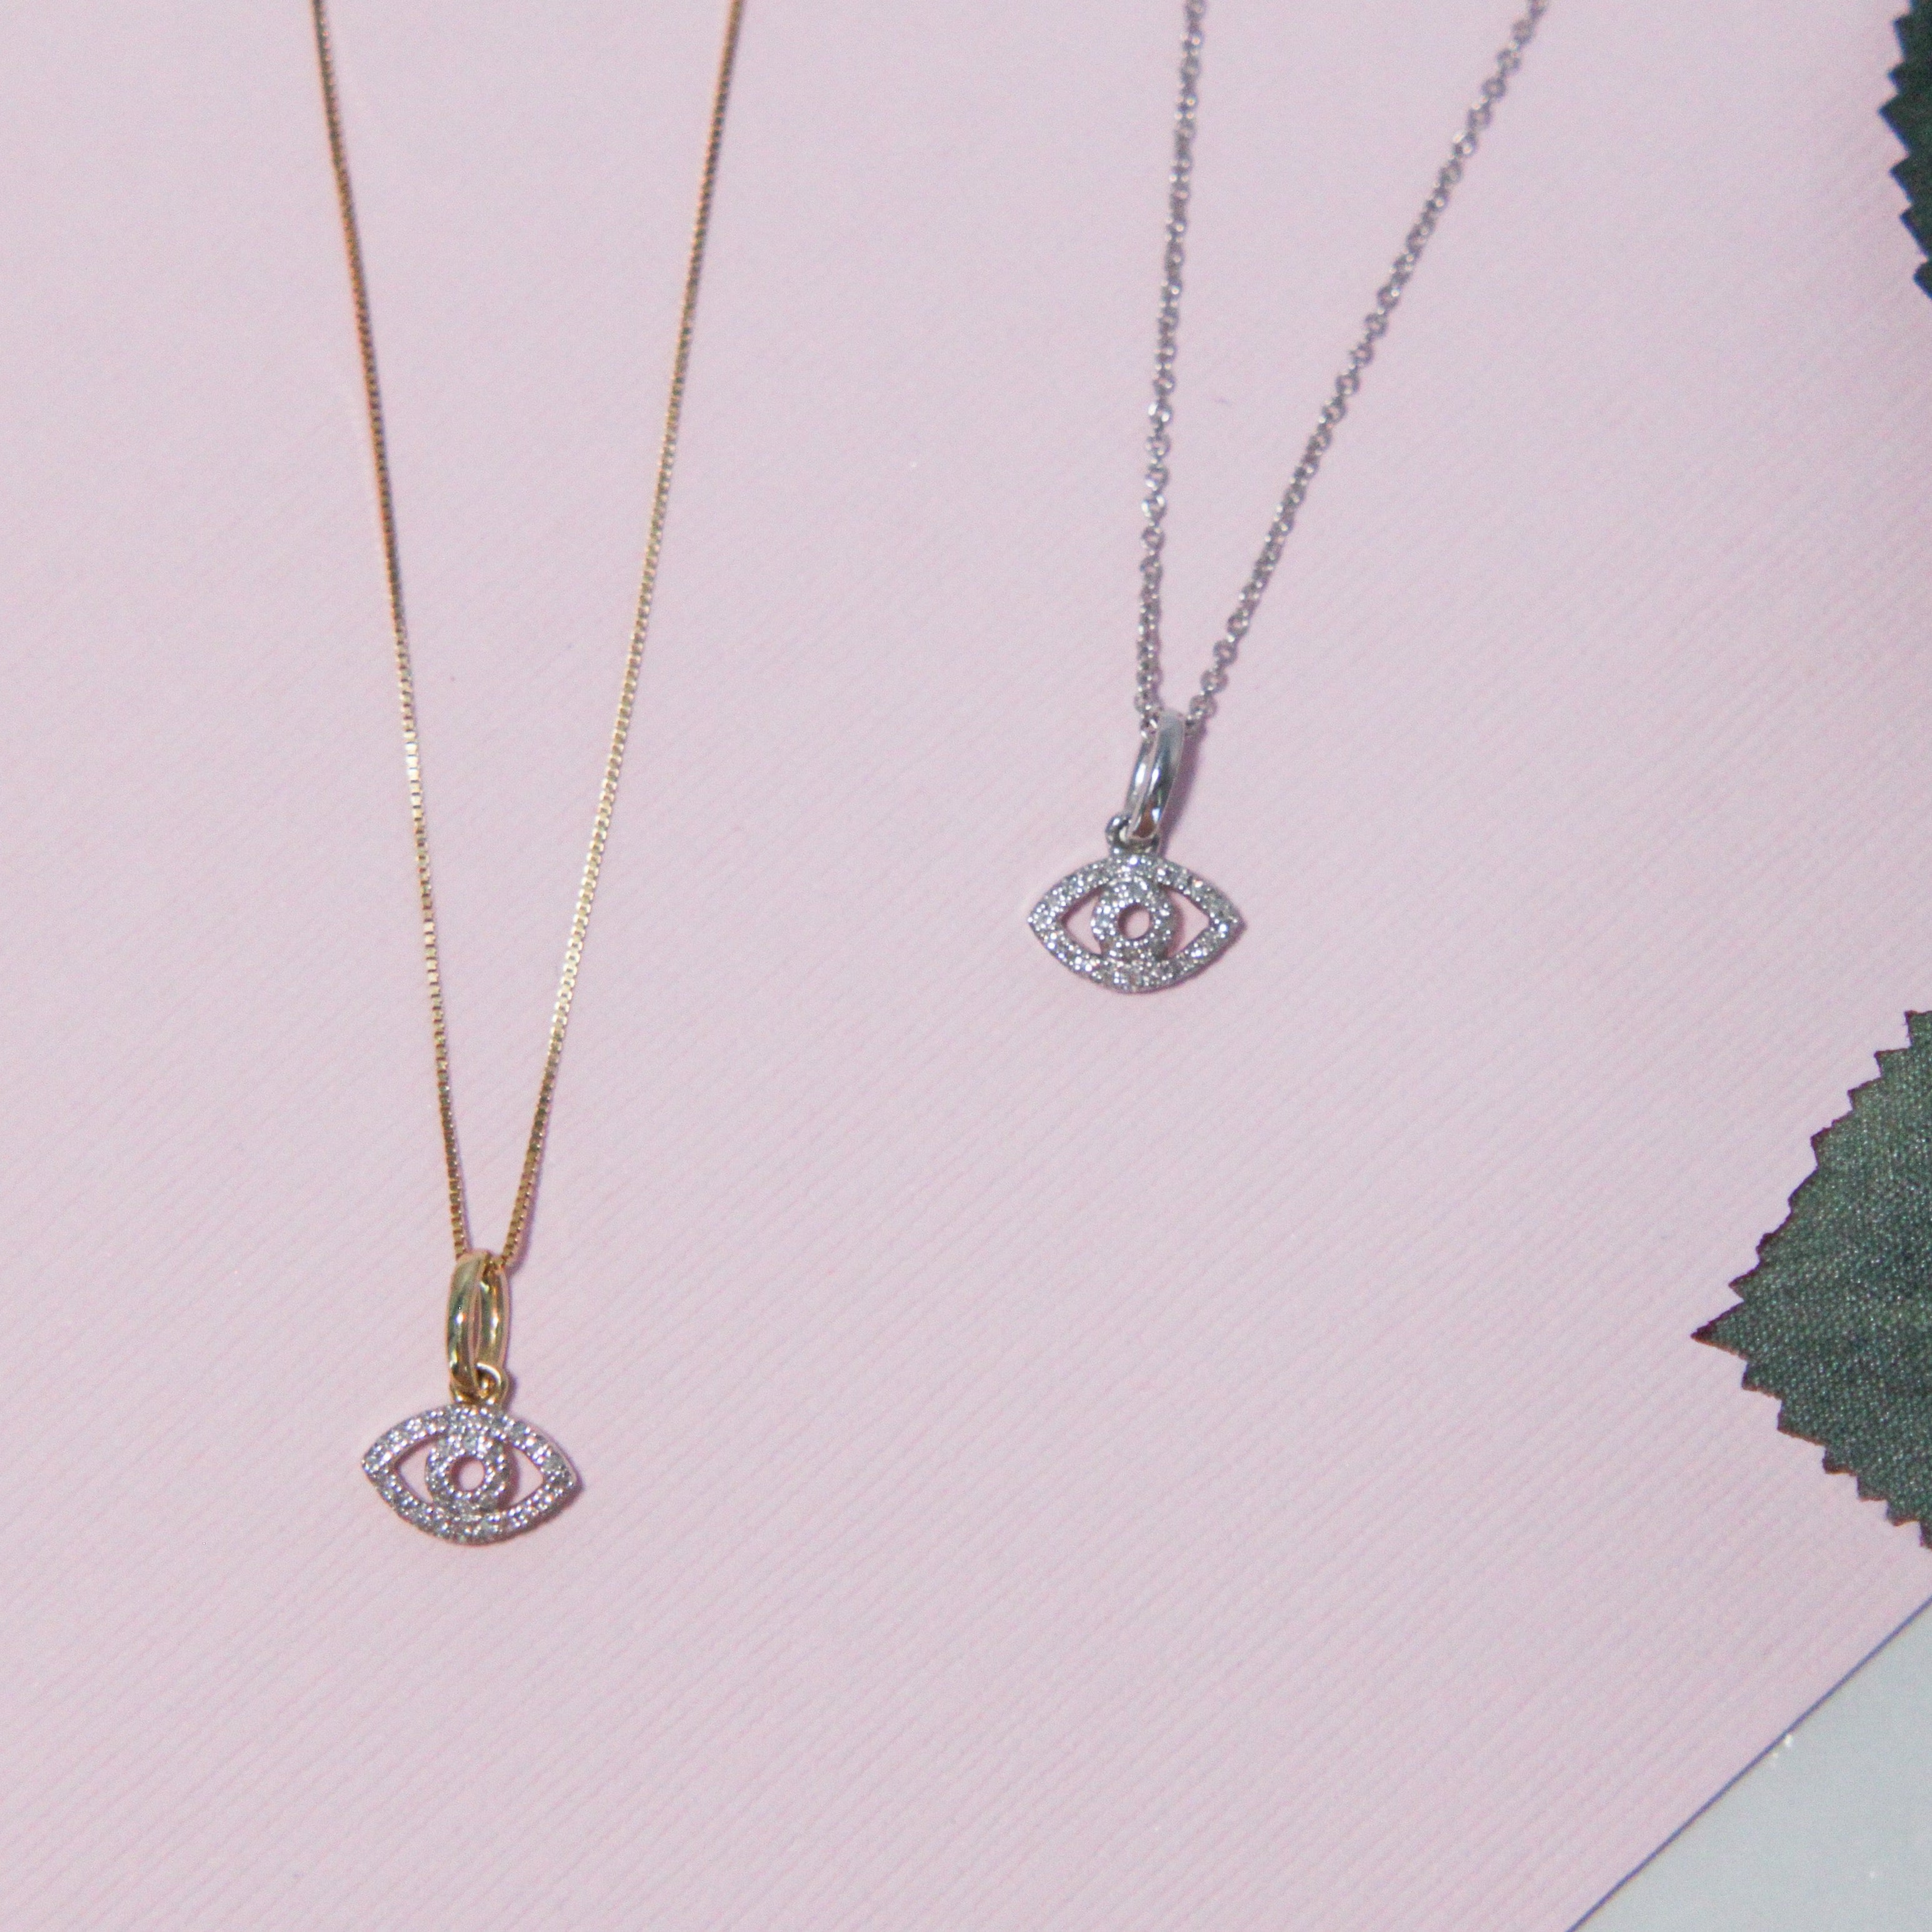 Two Evil eye gold and diamond necklaces on pink background